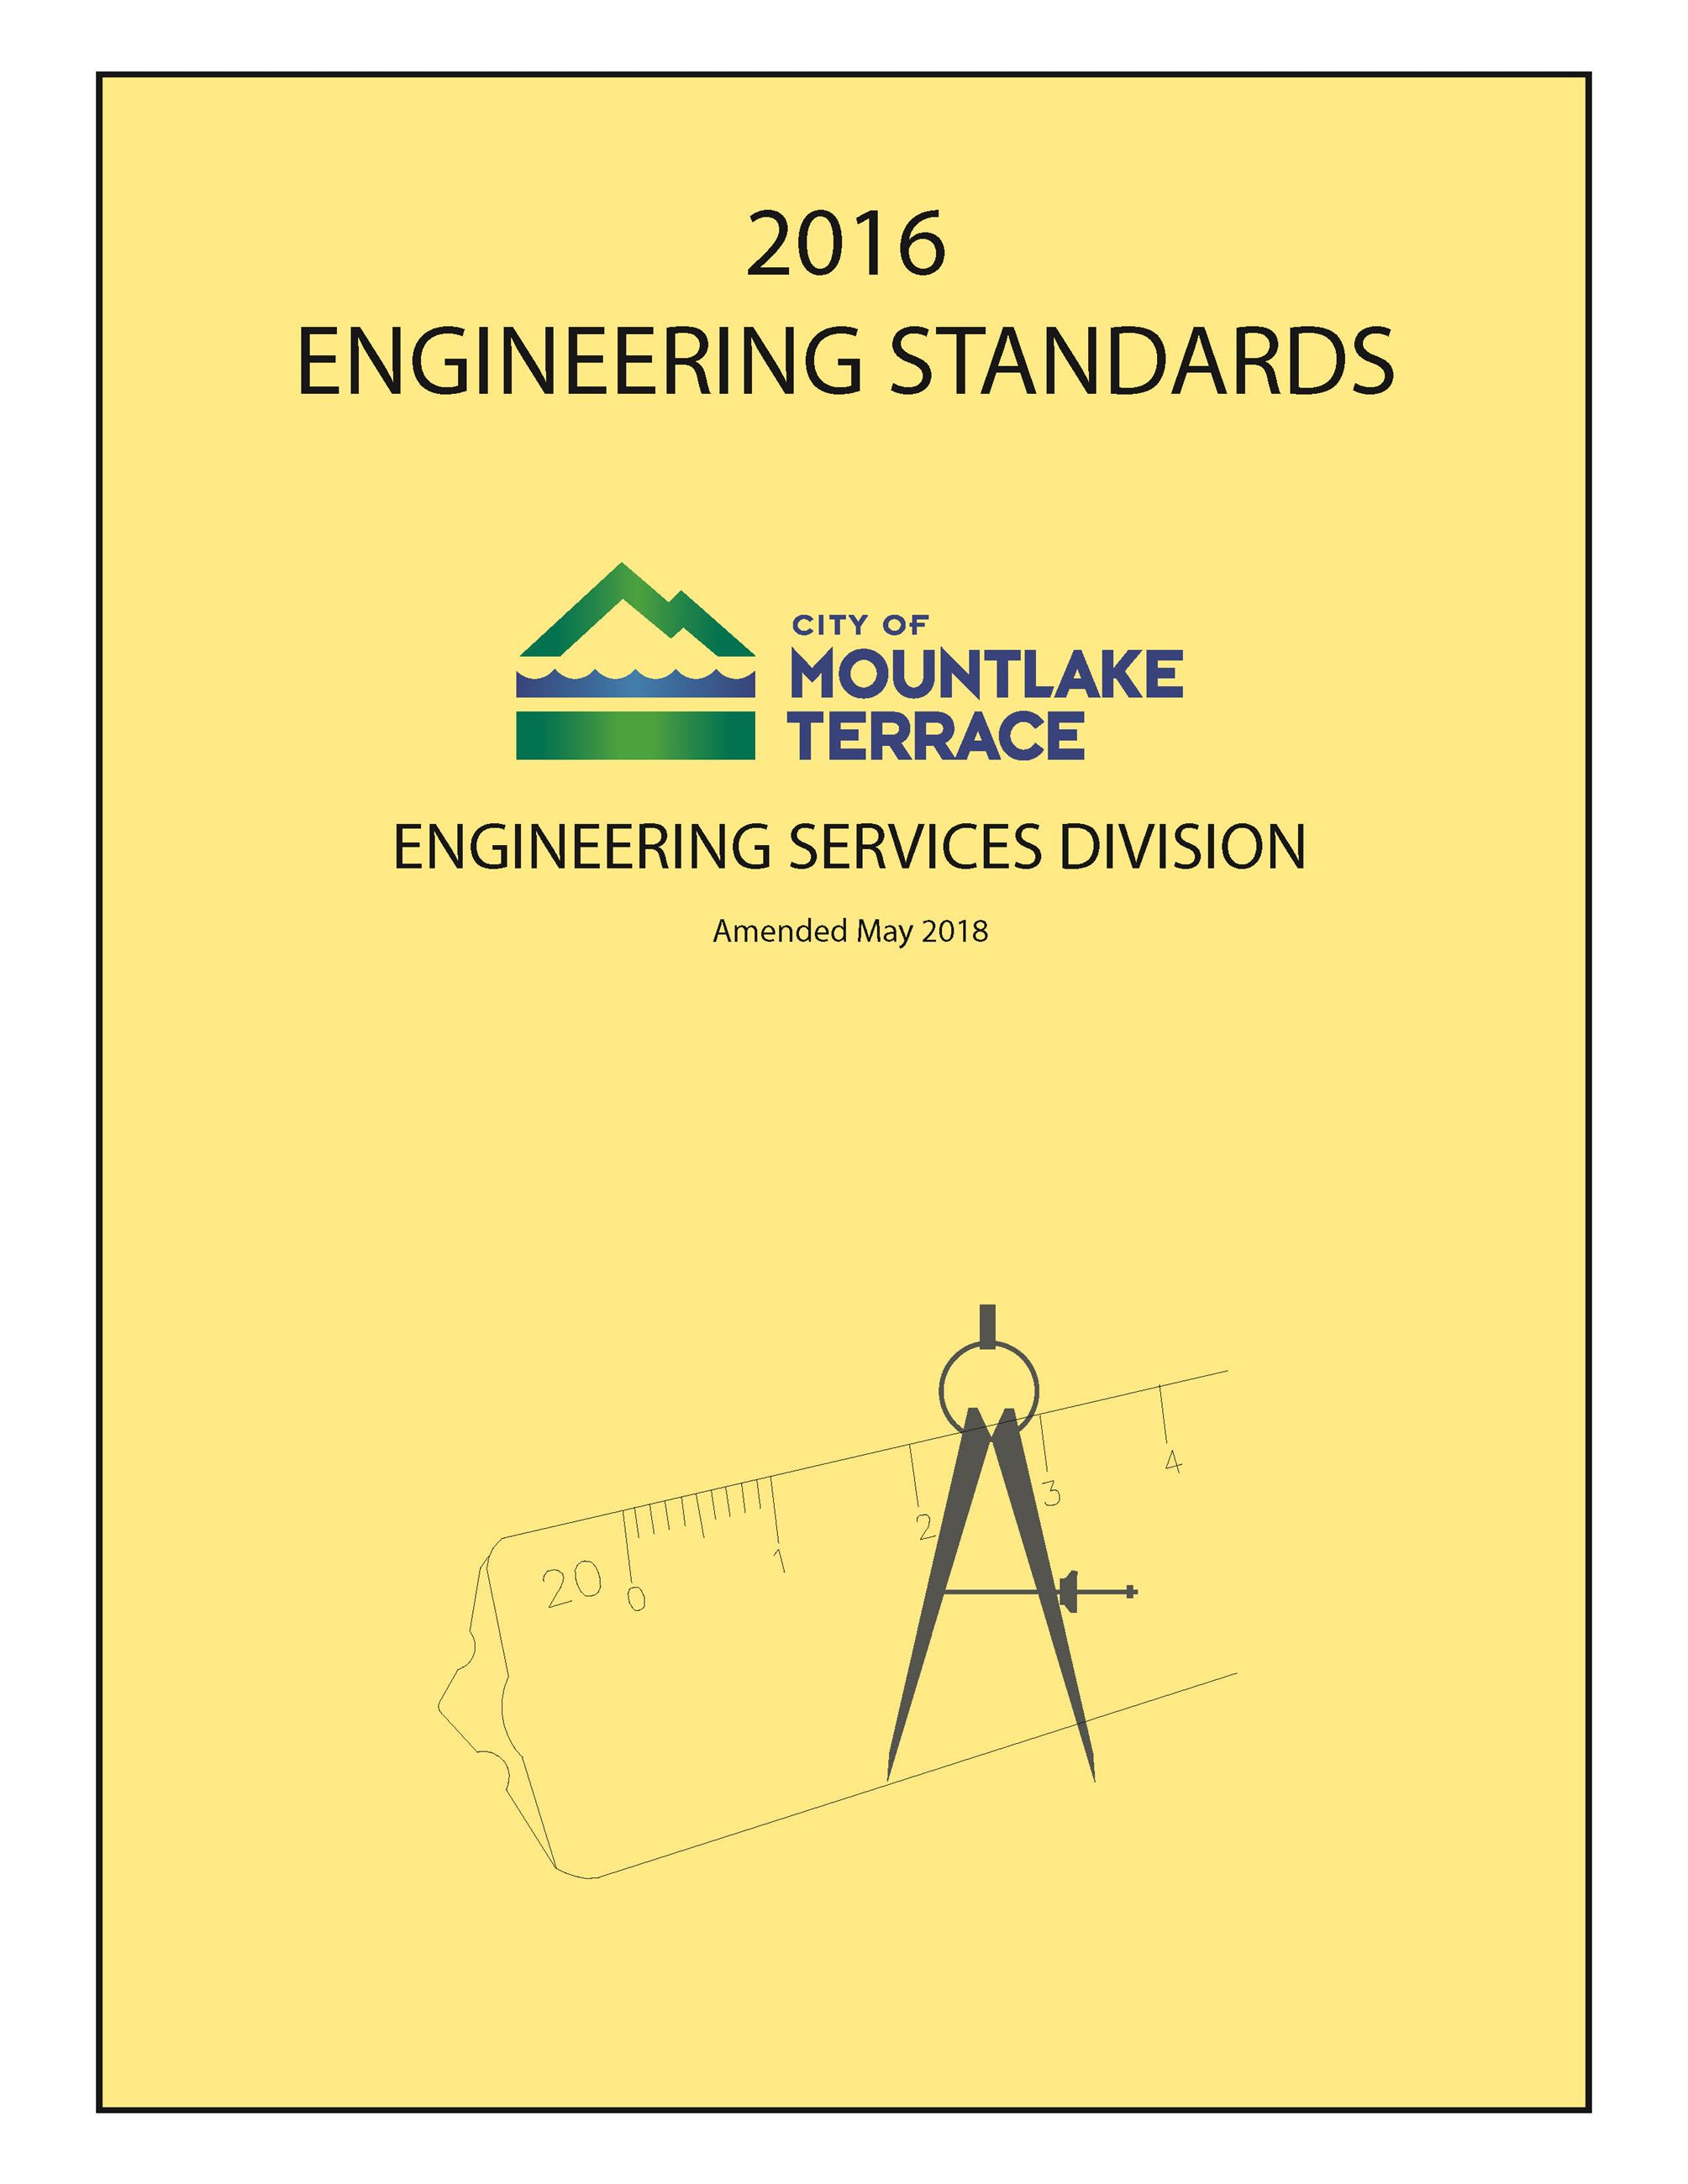 2016 Engineering Standards Cover